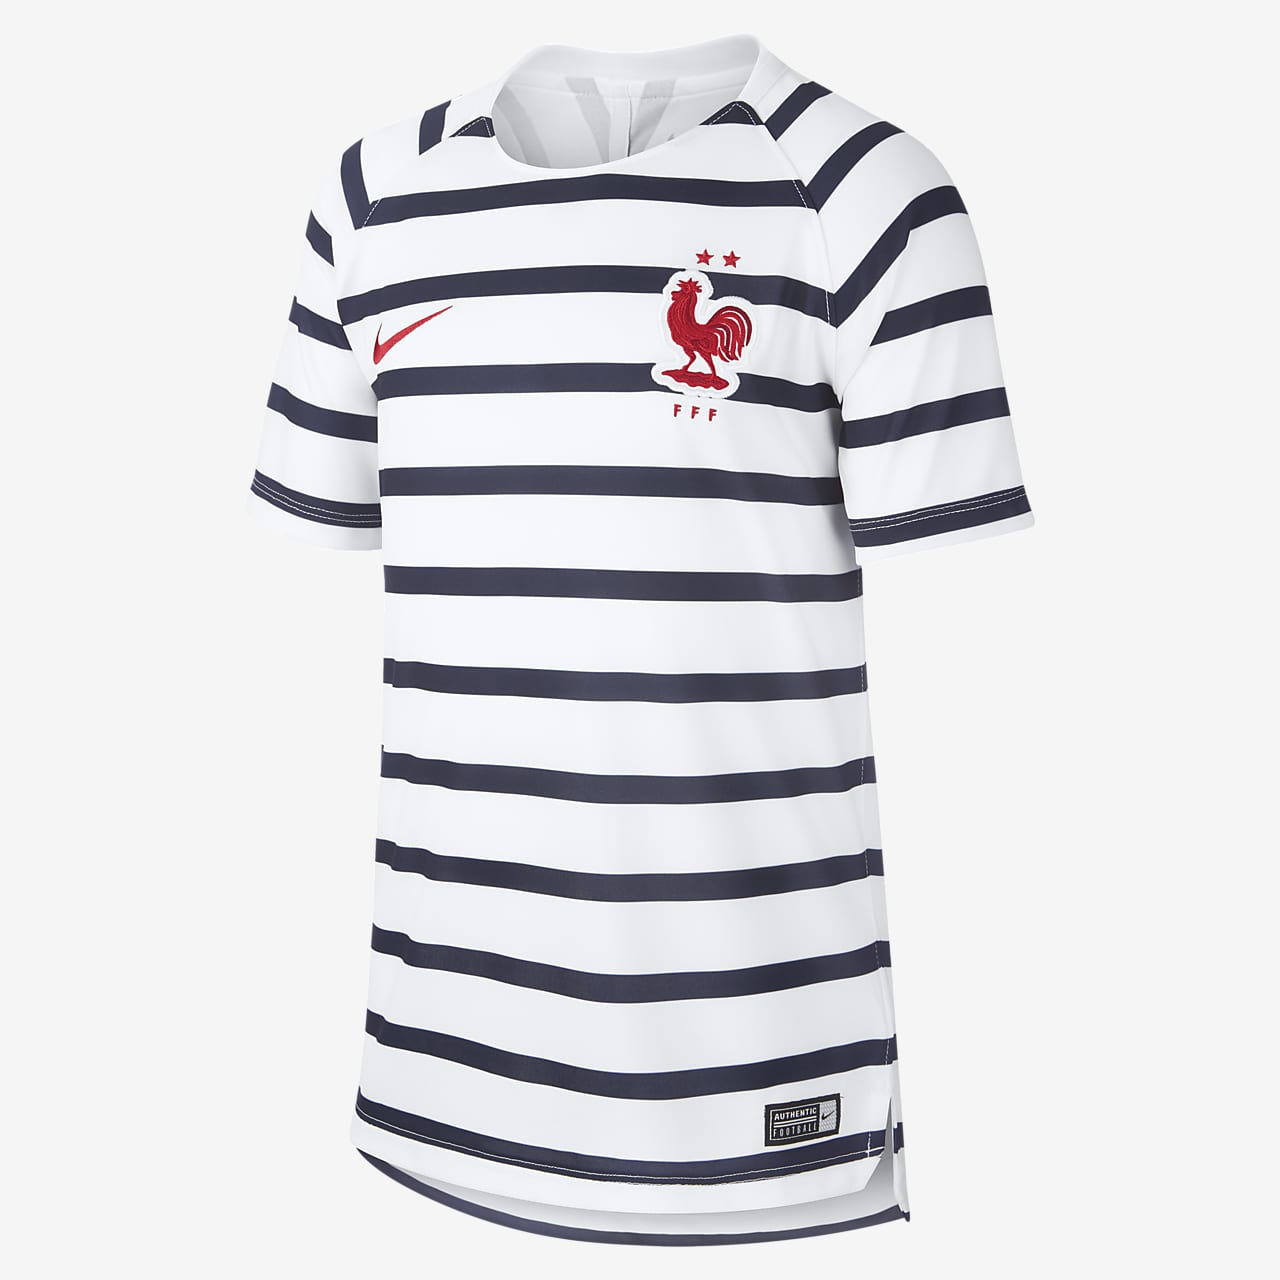 FFF Dri-FIT Squad Older Kids' Football Top